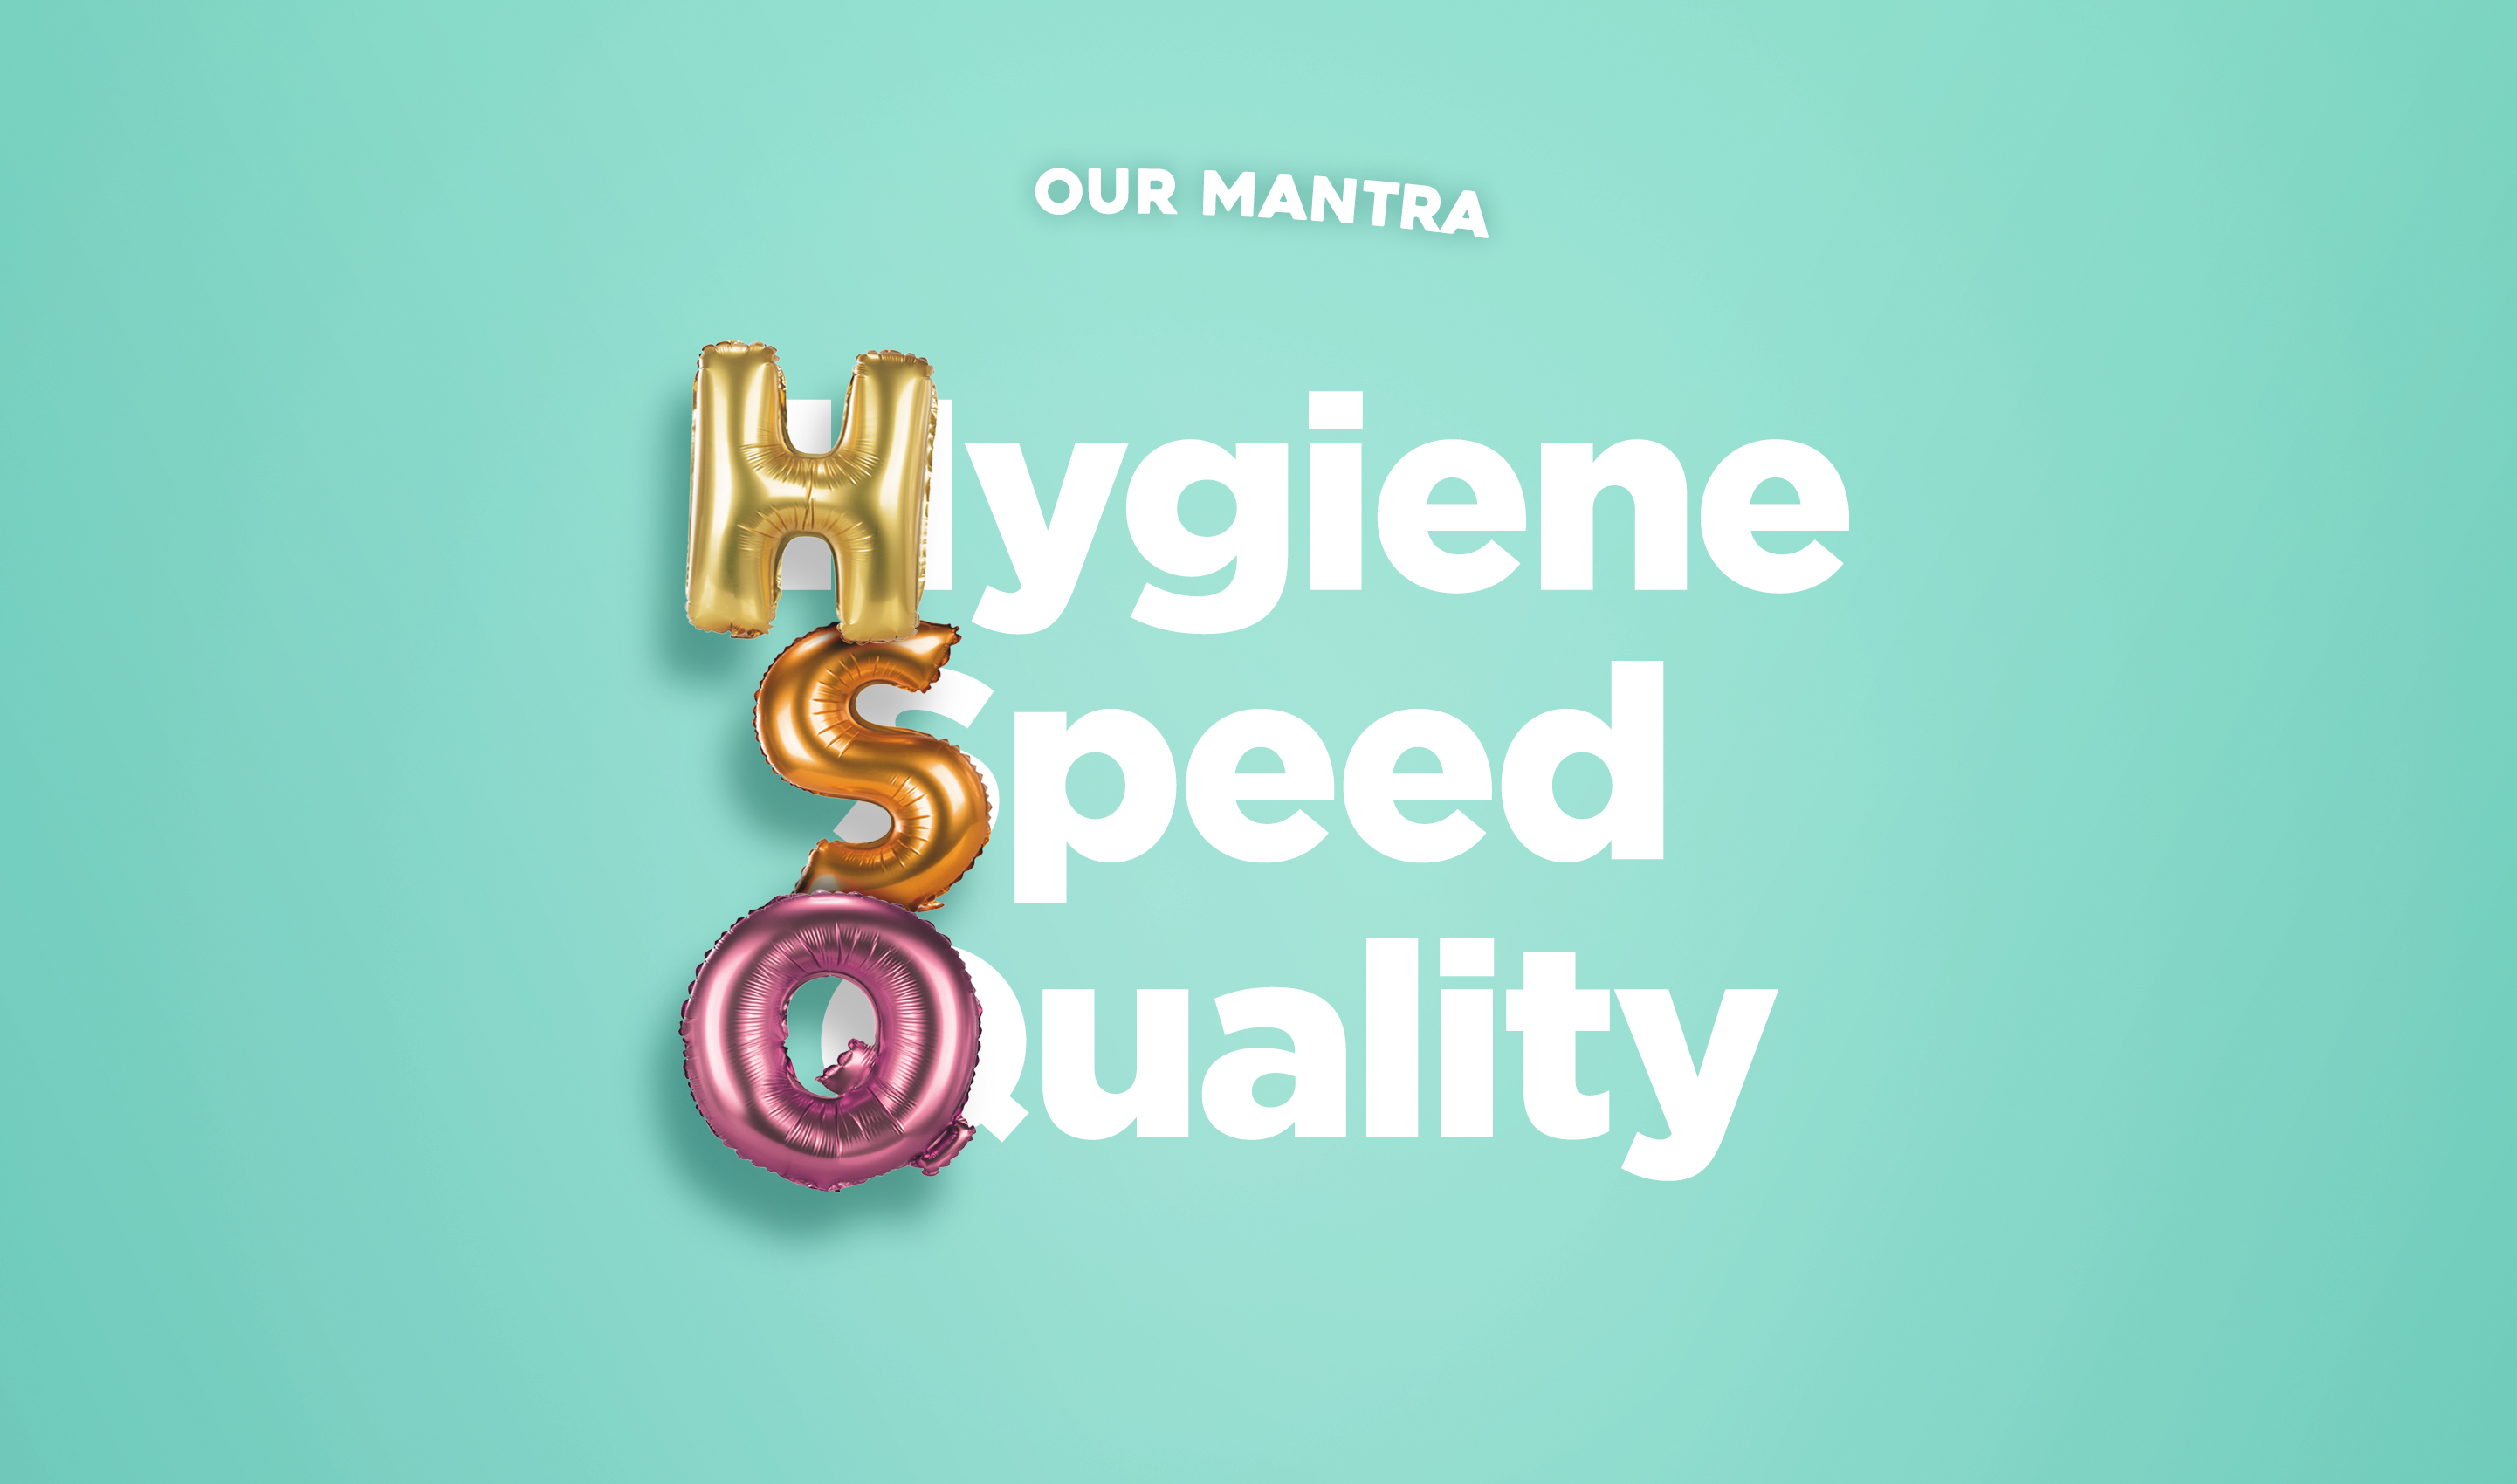 Our Mantra : Hygiene Speed Quality